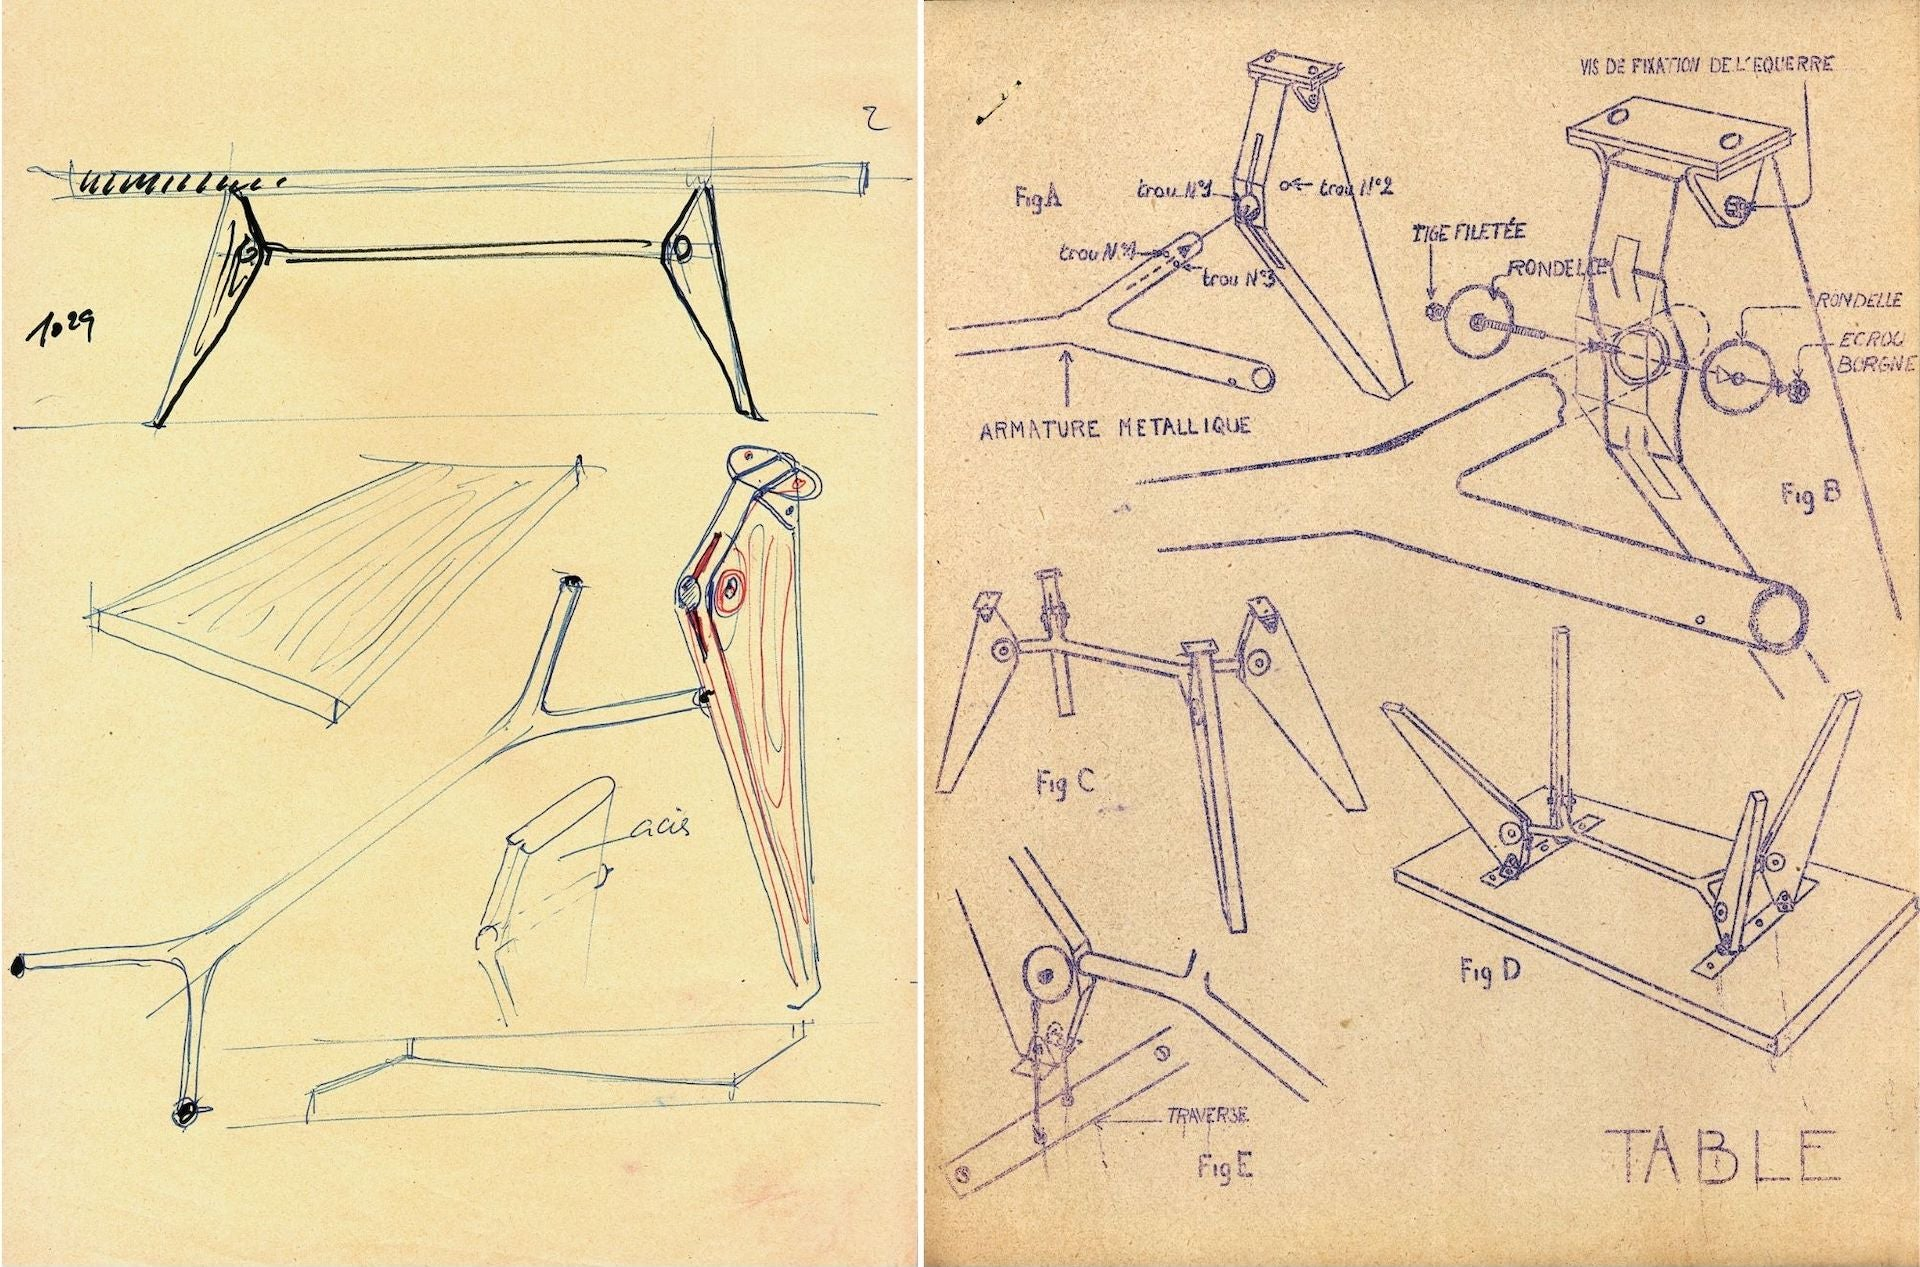 Left: Sketch of the S.A.M. Table by Jean Prouvé detailing the crossmember between the legs. Right: S.A.M. No. 502 Table assembly instructions by Ateliers Jean Prouvé, ca. 1951. Images courtesy of Galerie Patrick Seguin